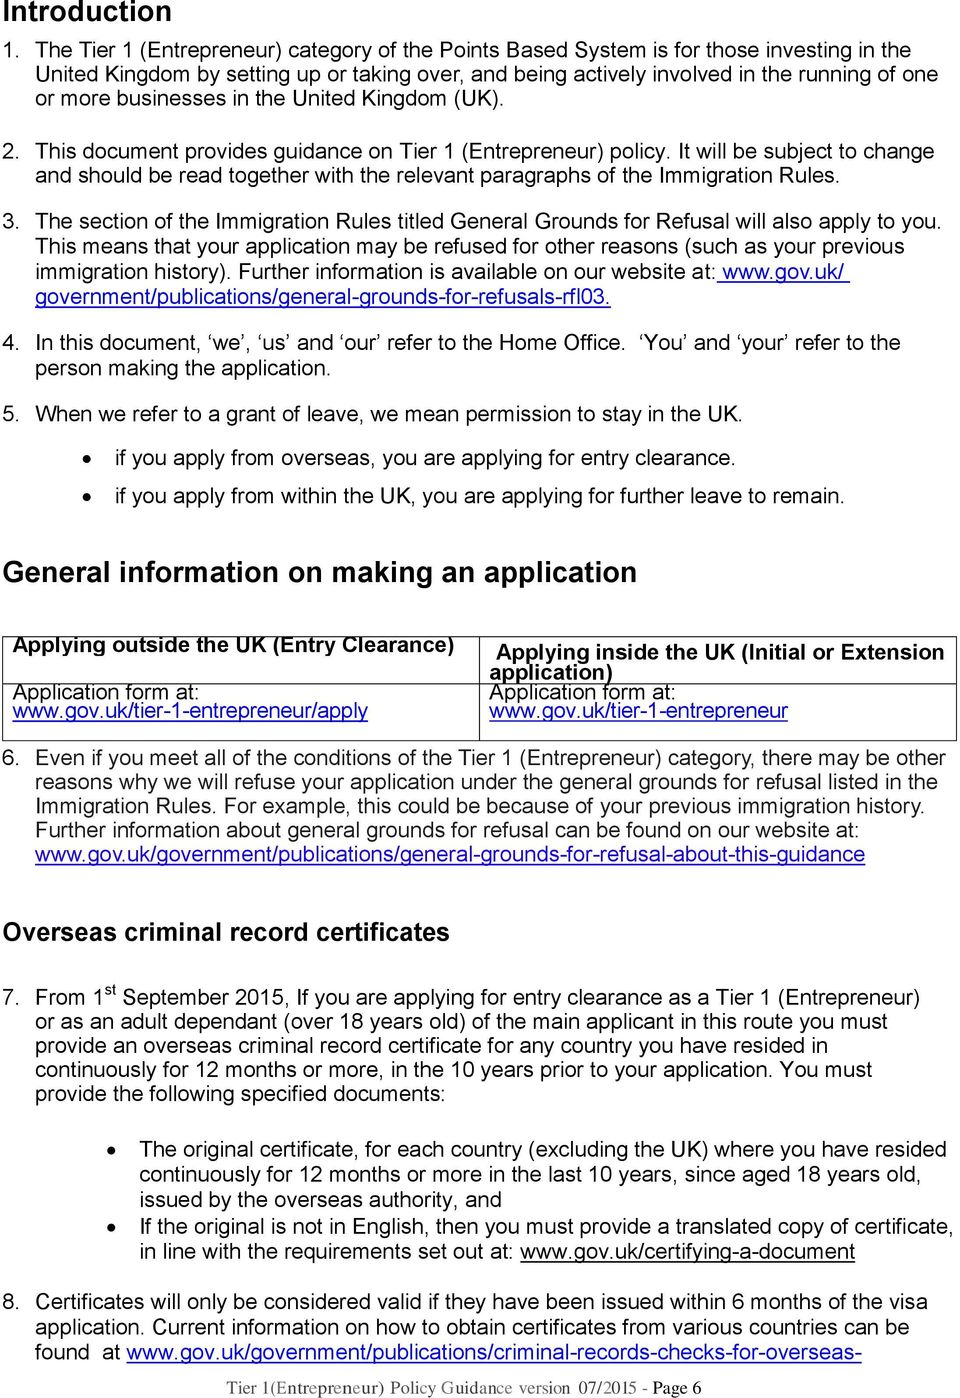 businesses in the United Kingdom (UK). 2. This document provides guidance on Tier 1 (Entrepreneur) policy.